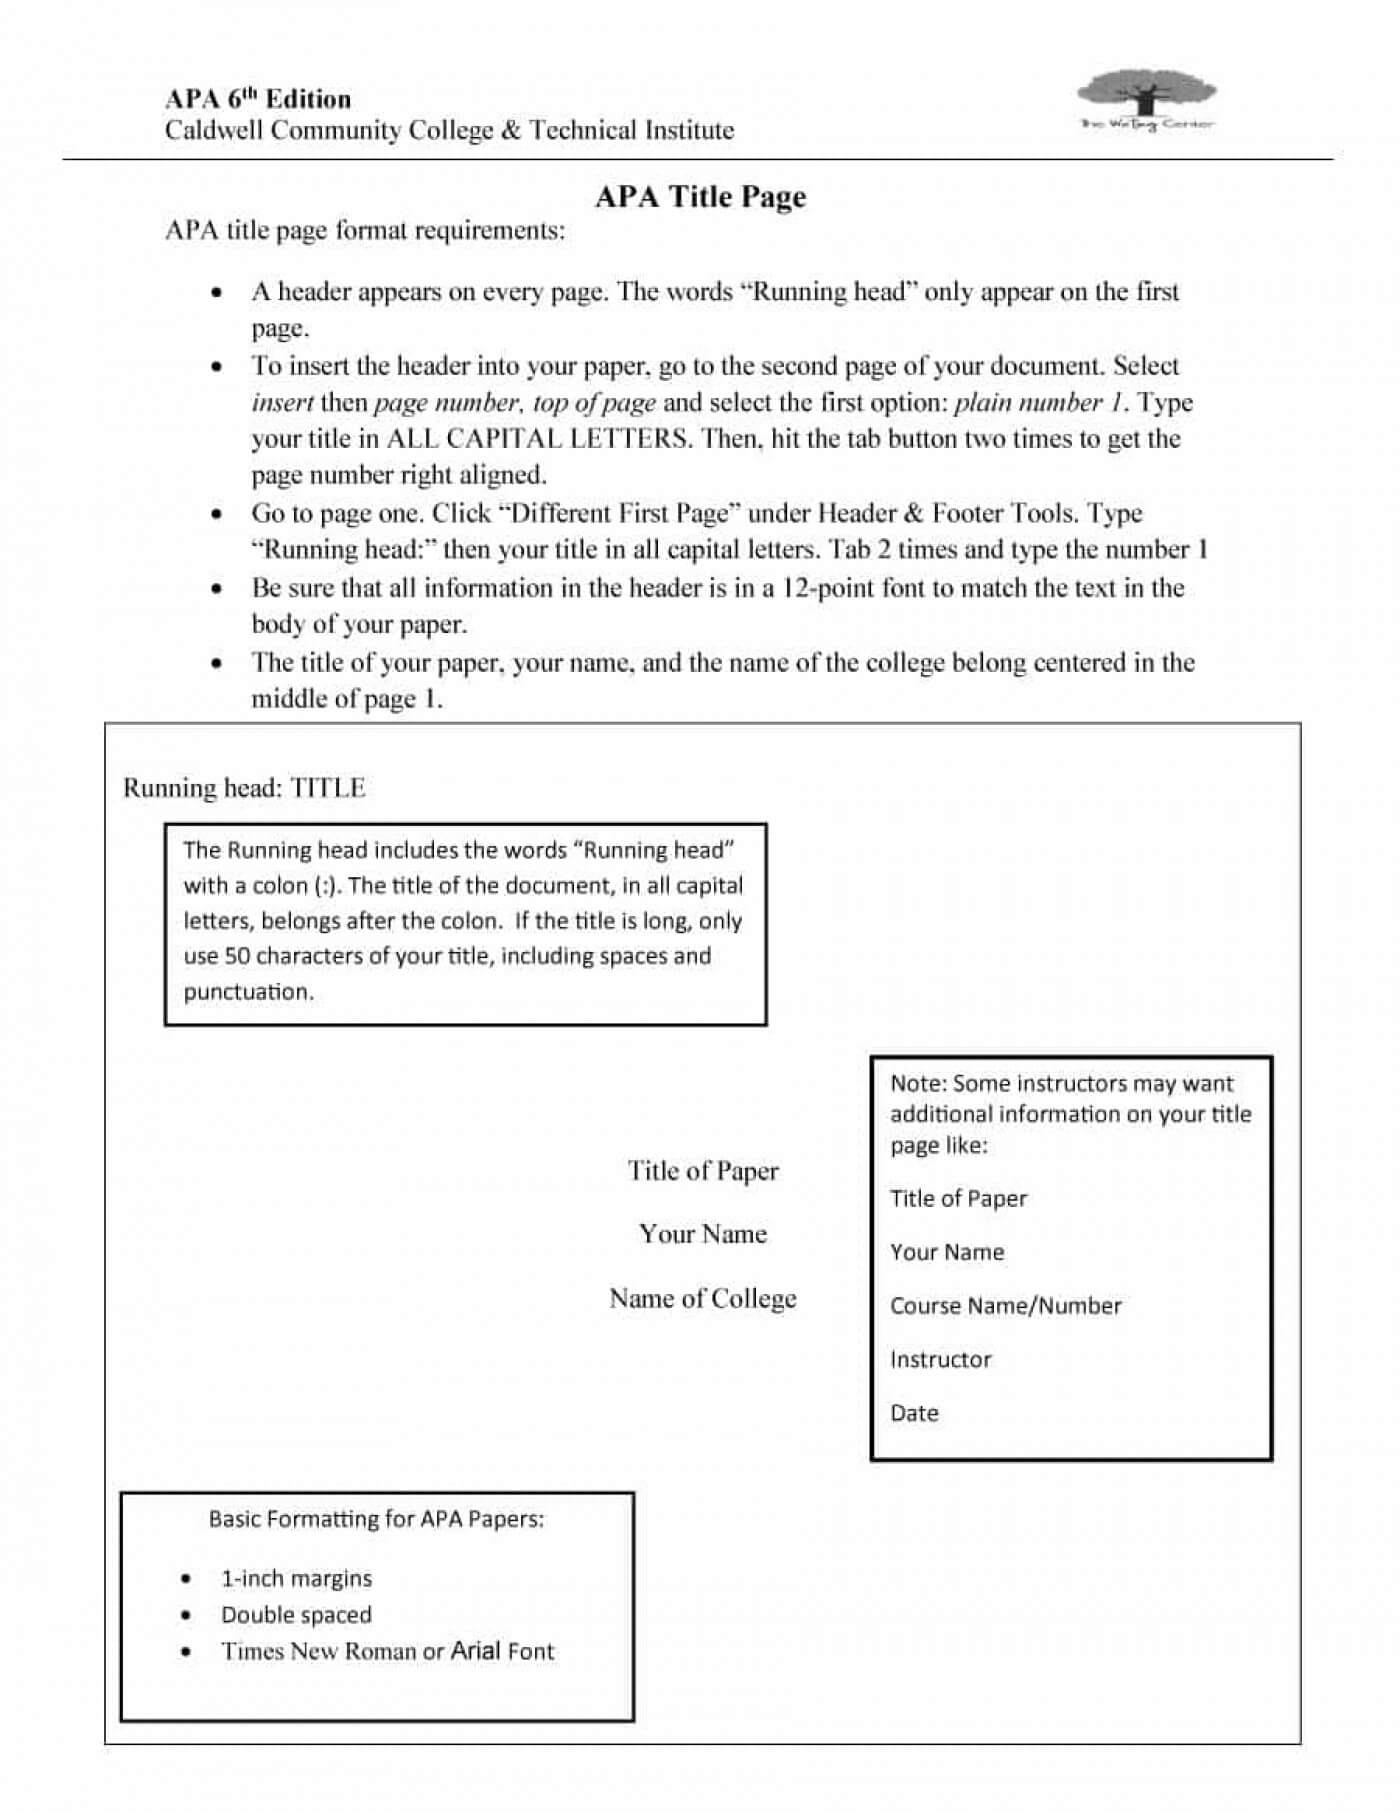 015 Essay Format Apa Template Example Price Fig11 003 For Apa Template For Word 2010